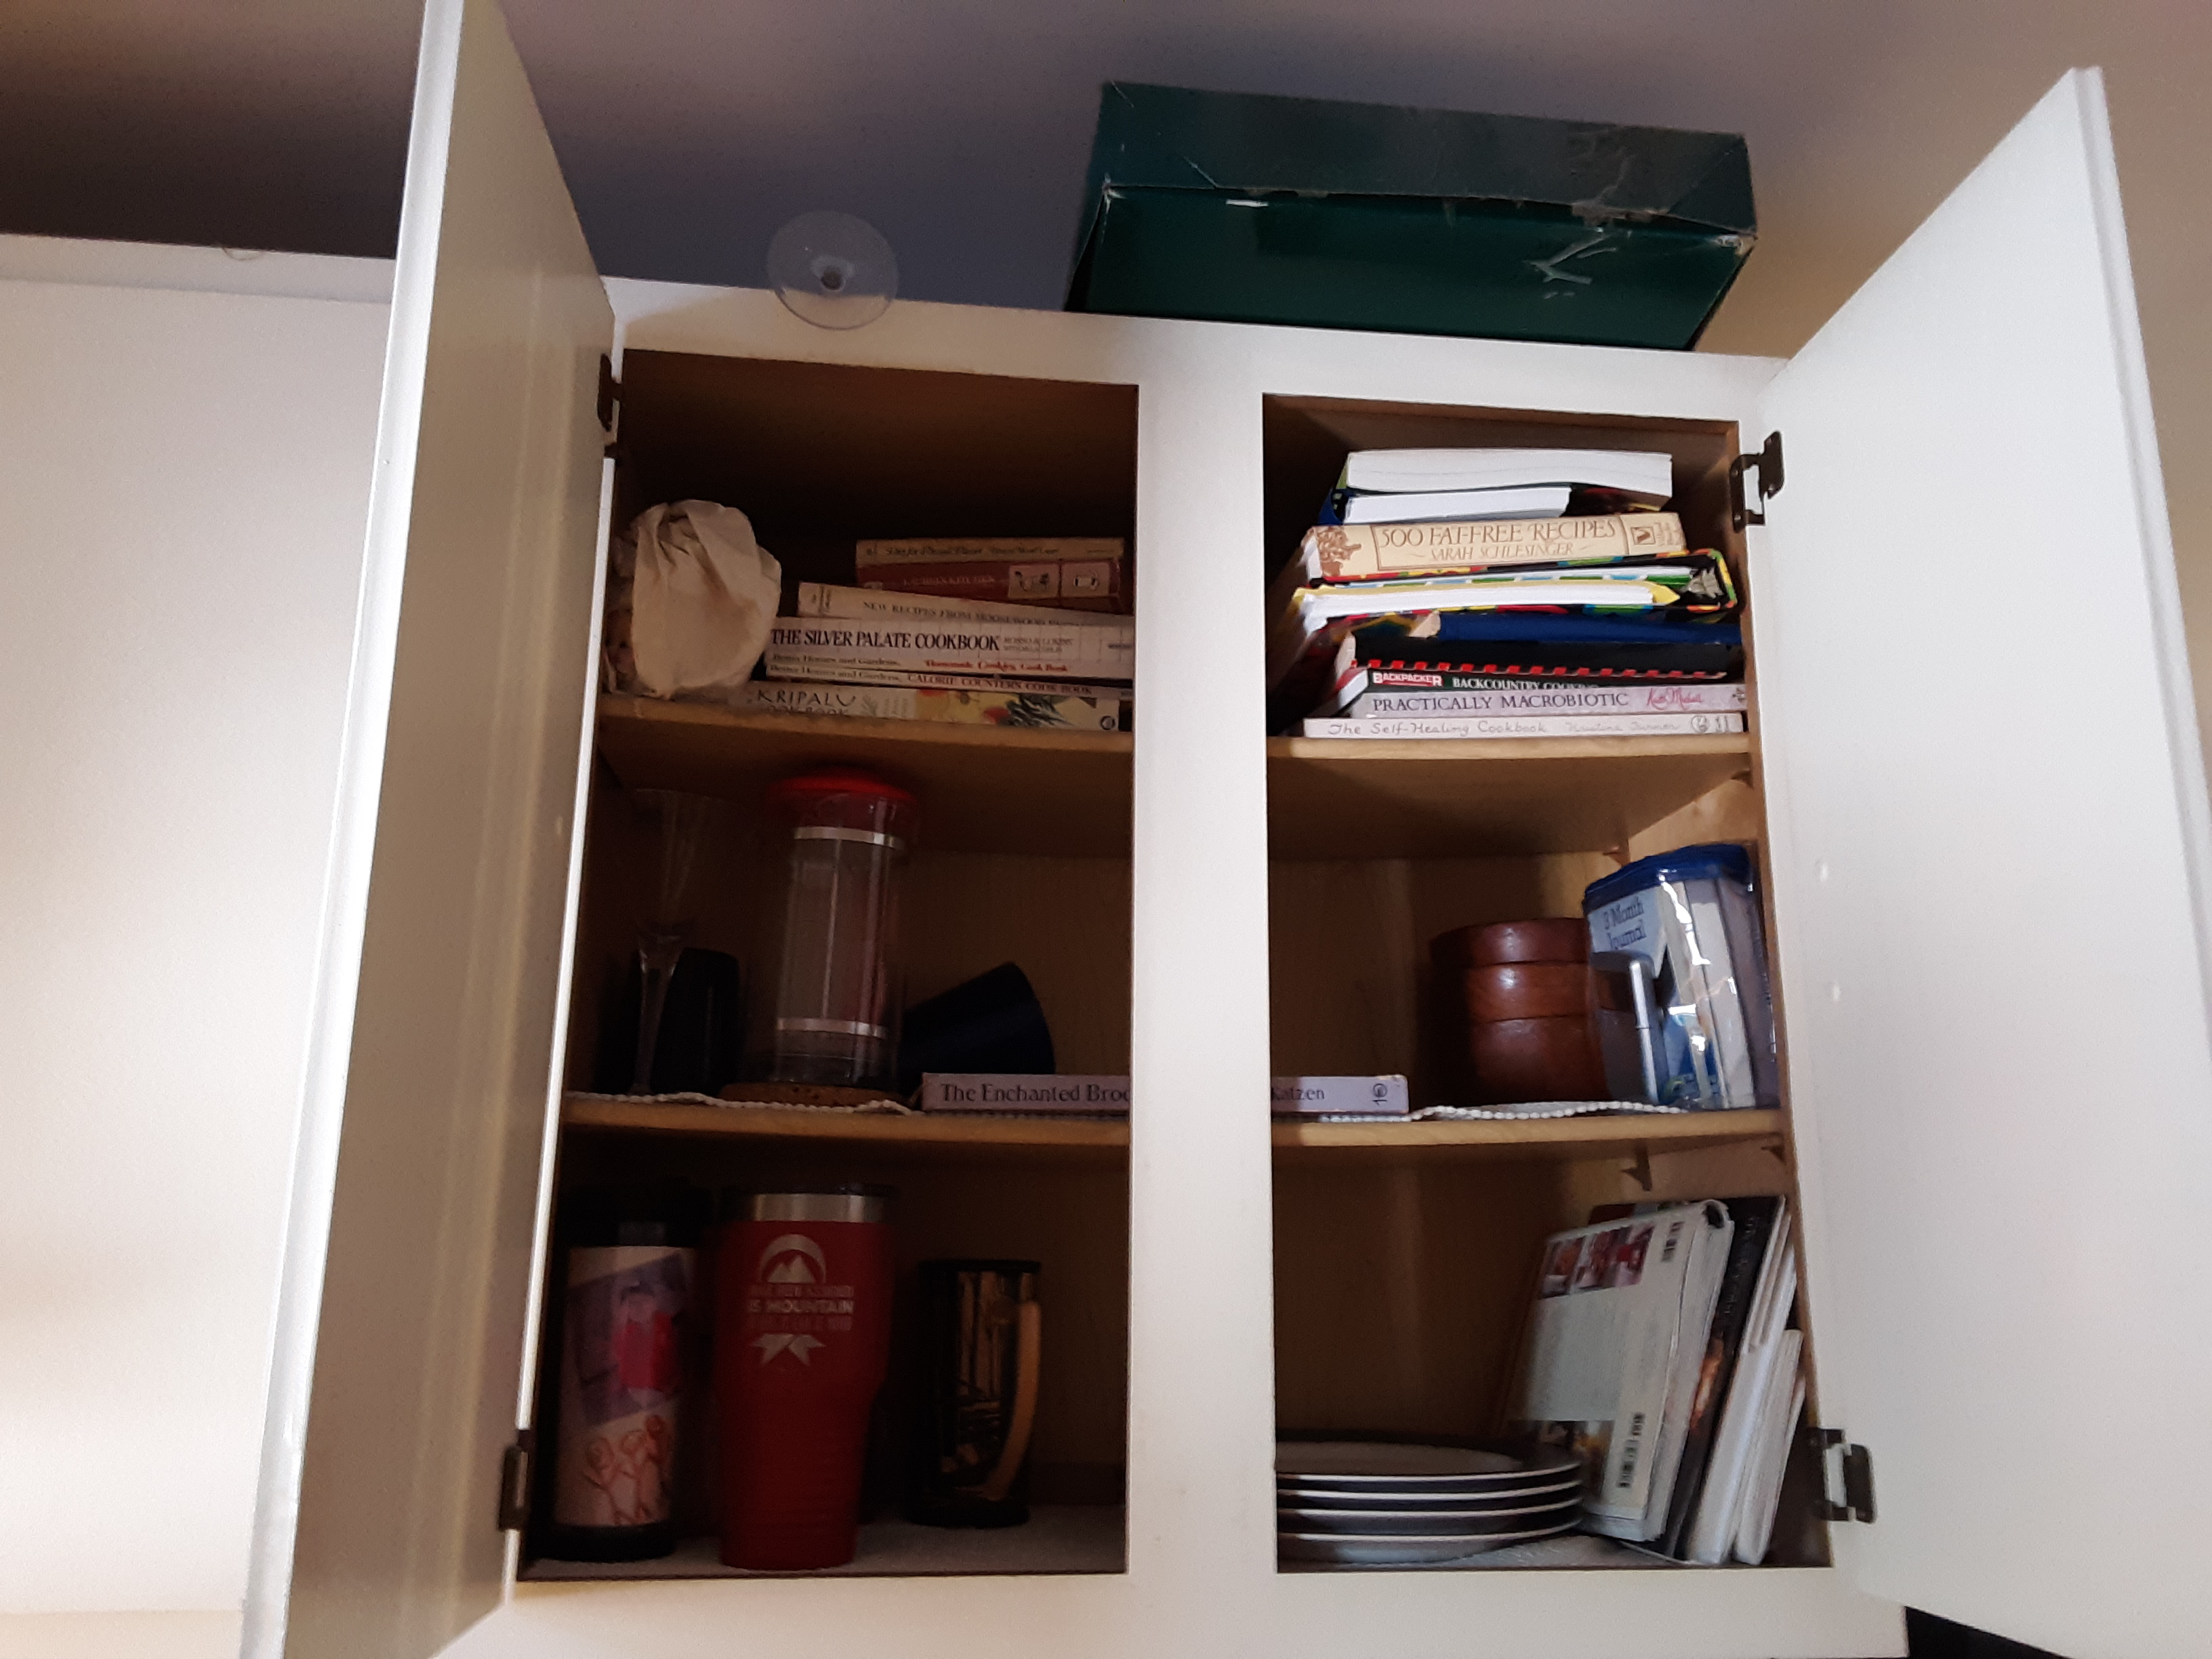 A surprising storage spot for cookbooks!